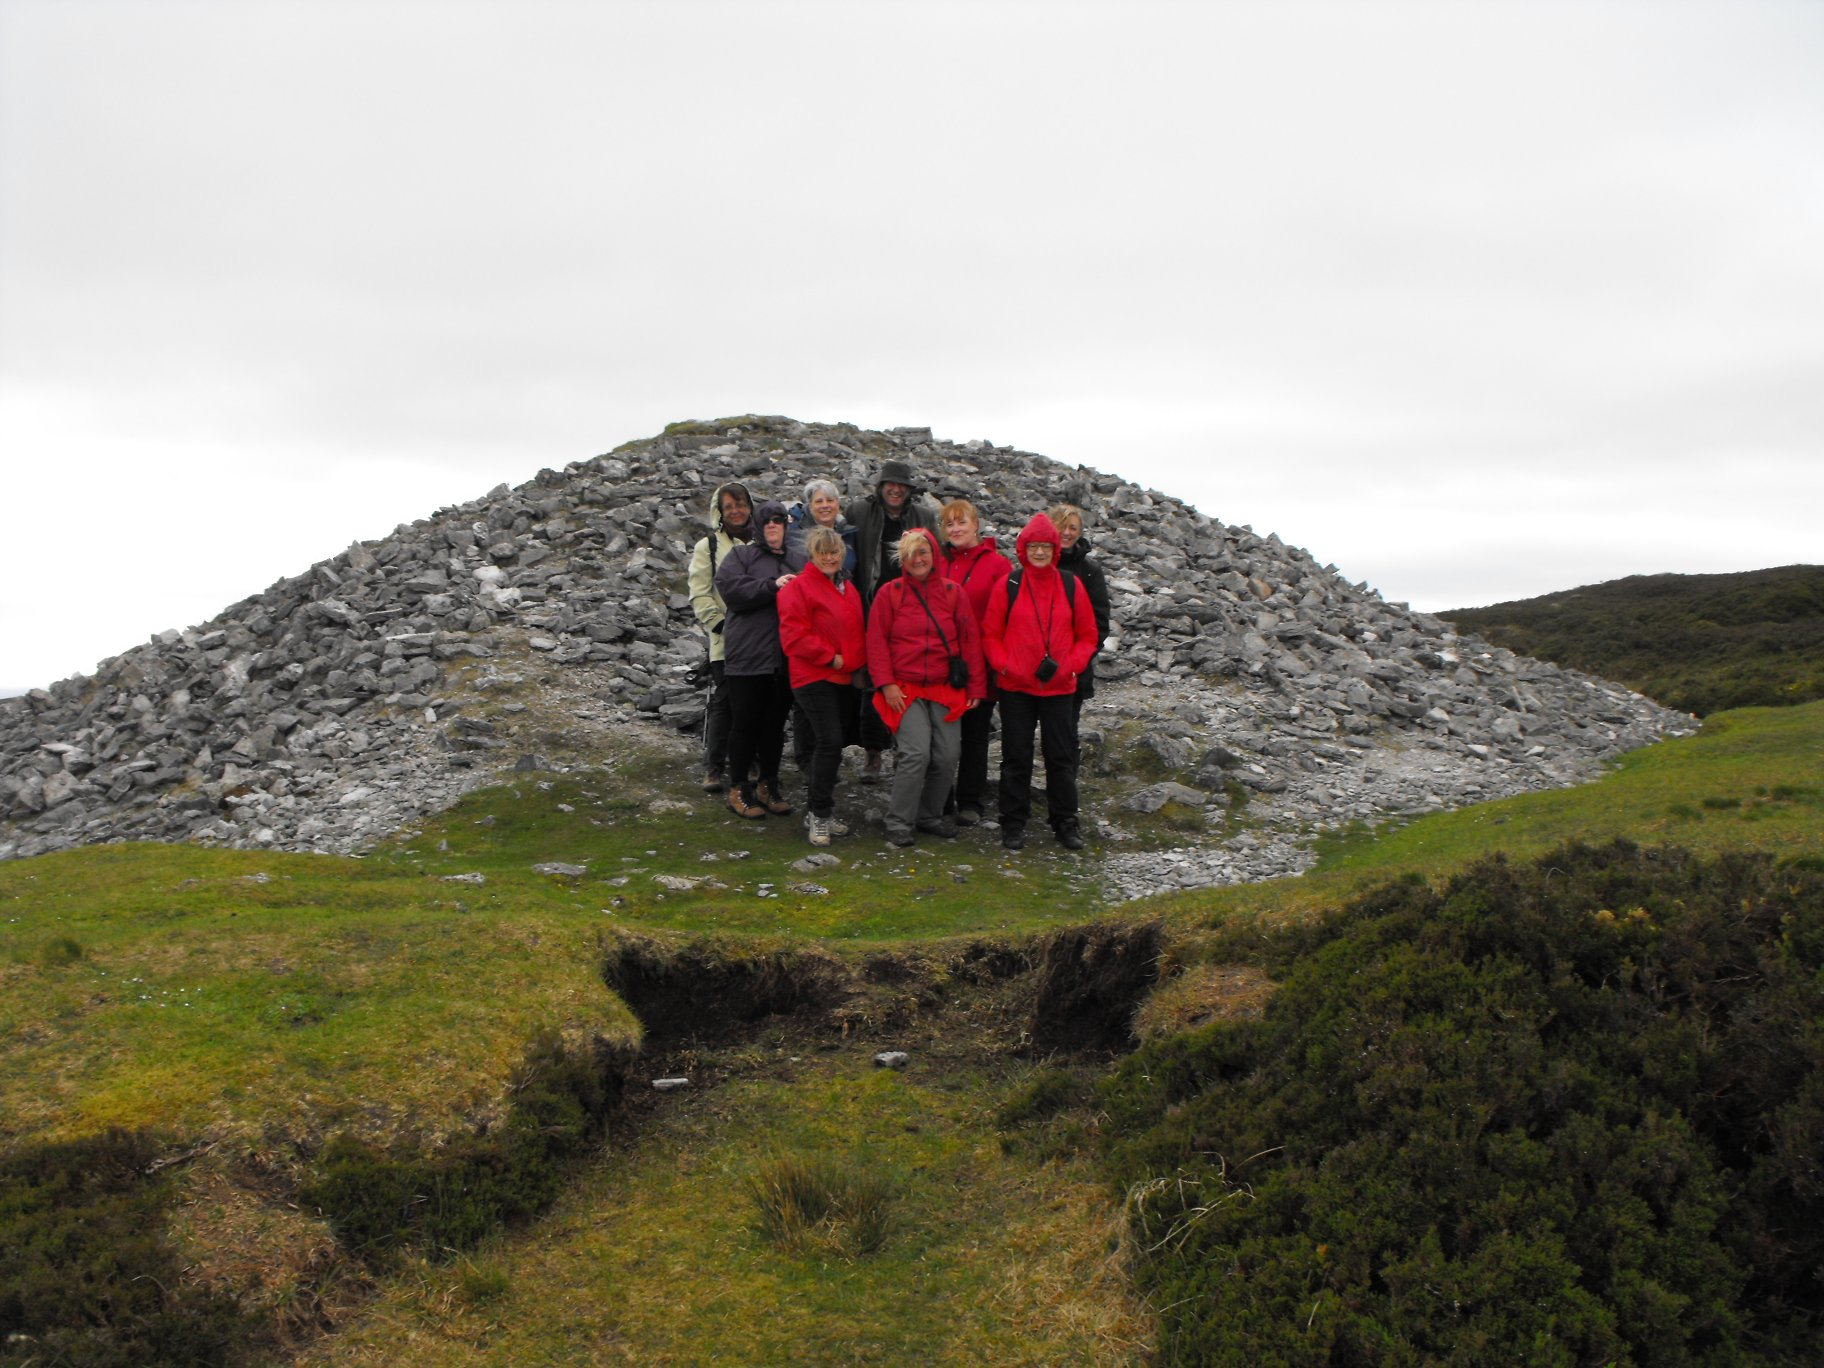 A windy day at Carrowkeel